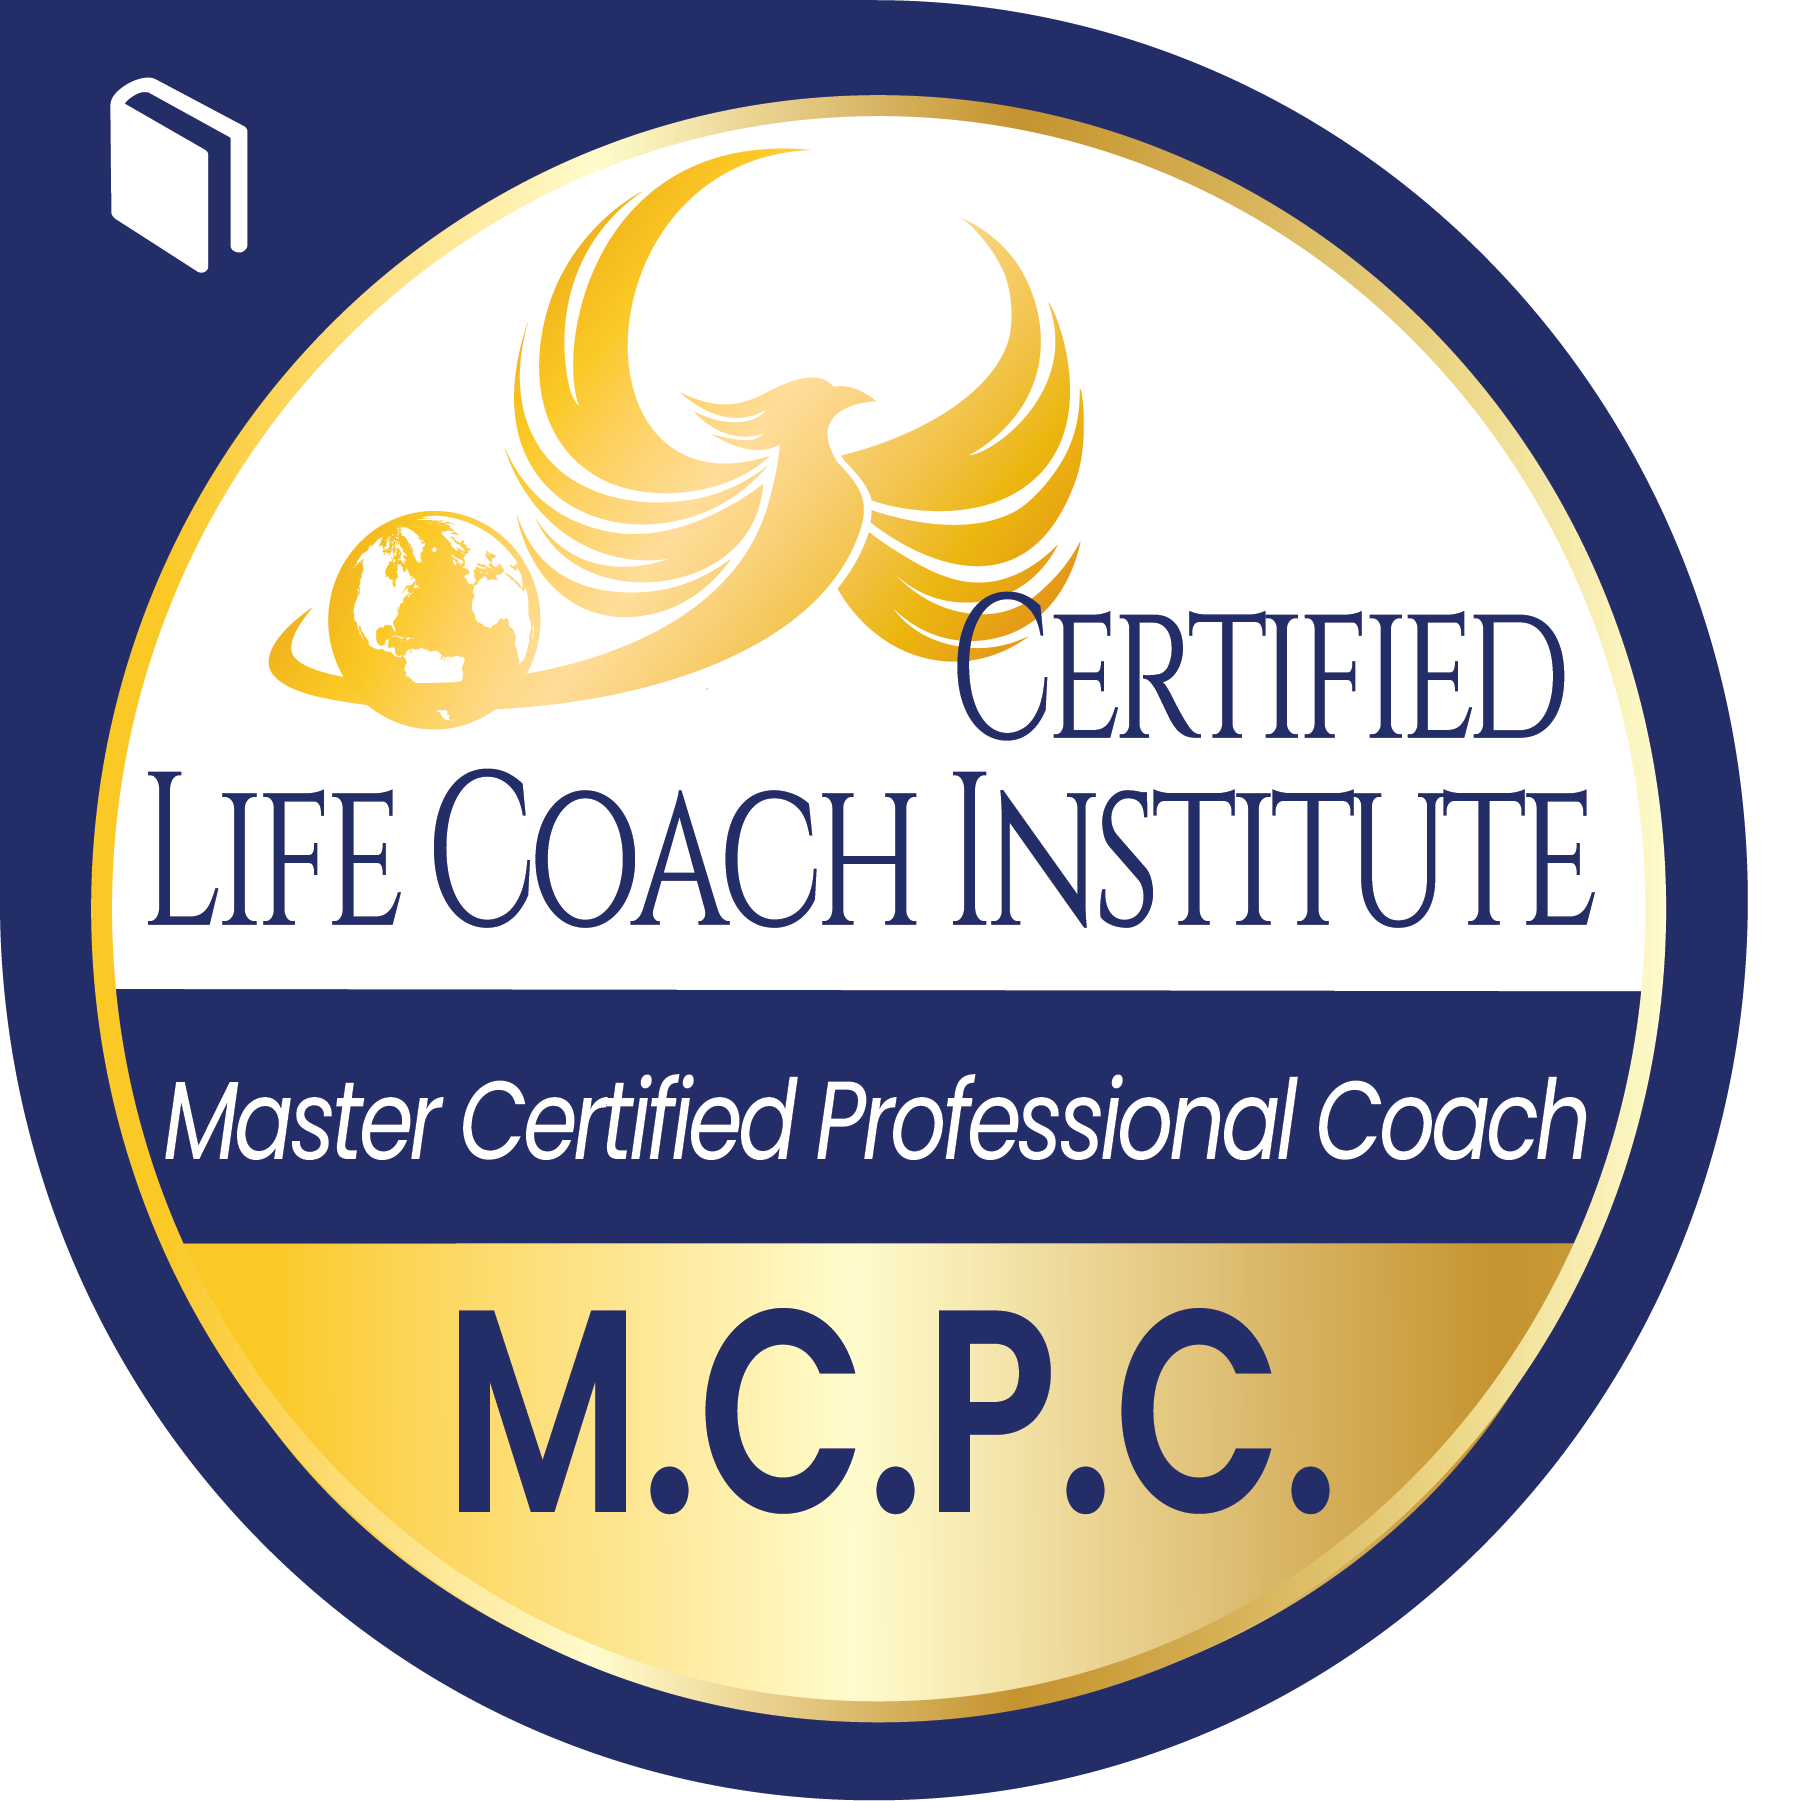 Level 2: Master Certified Professional Coach